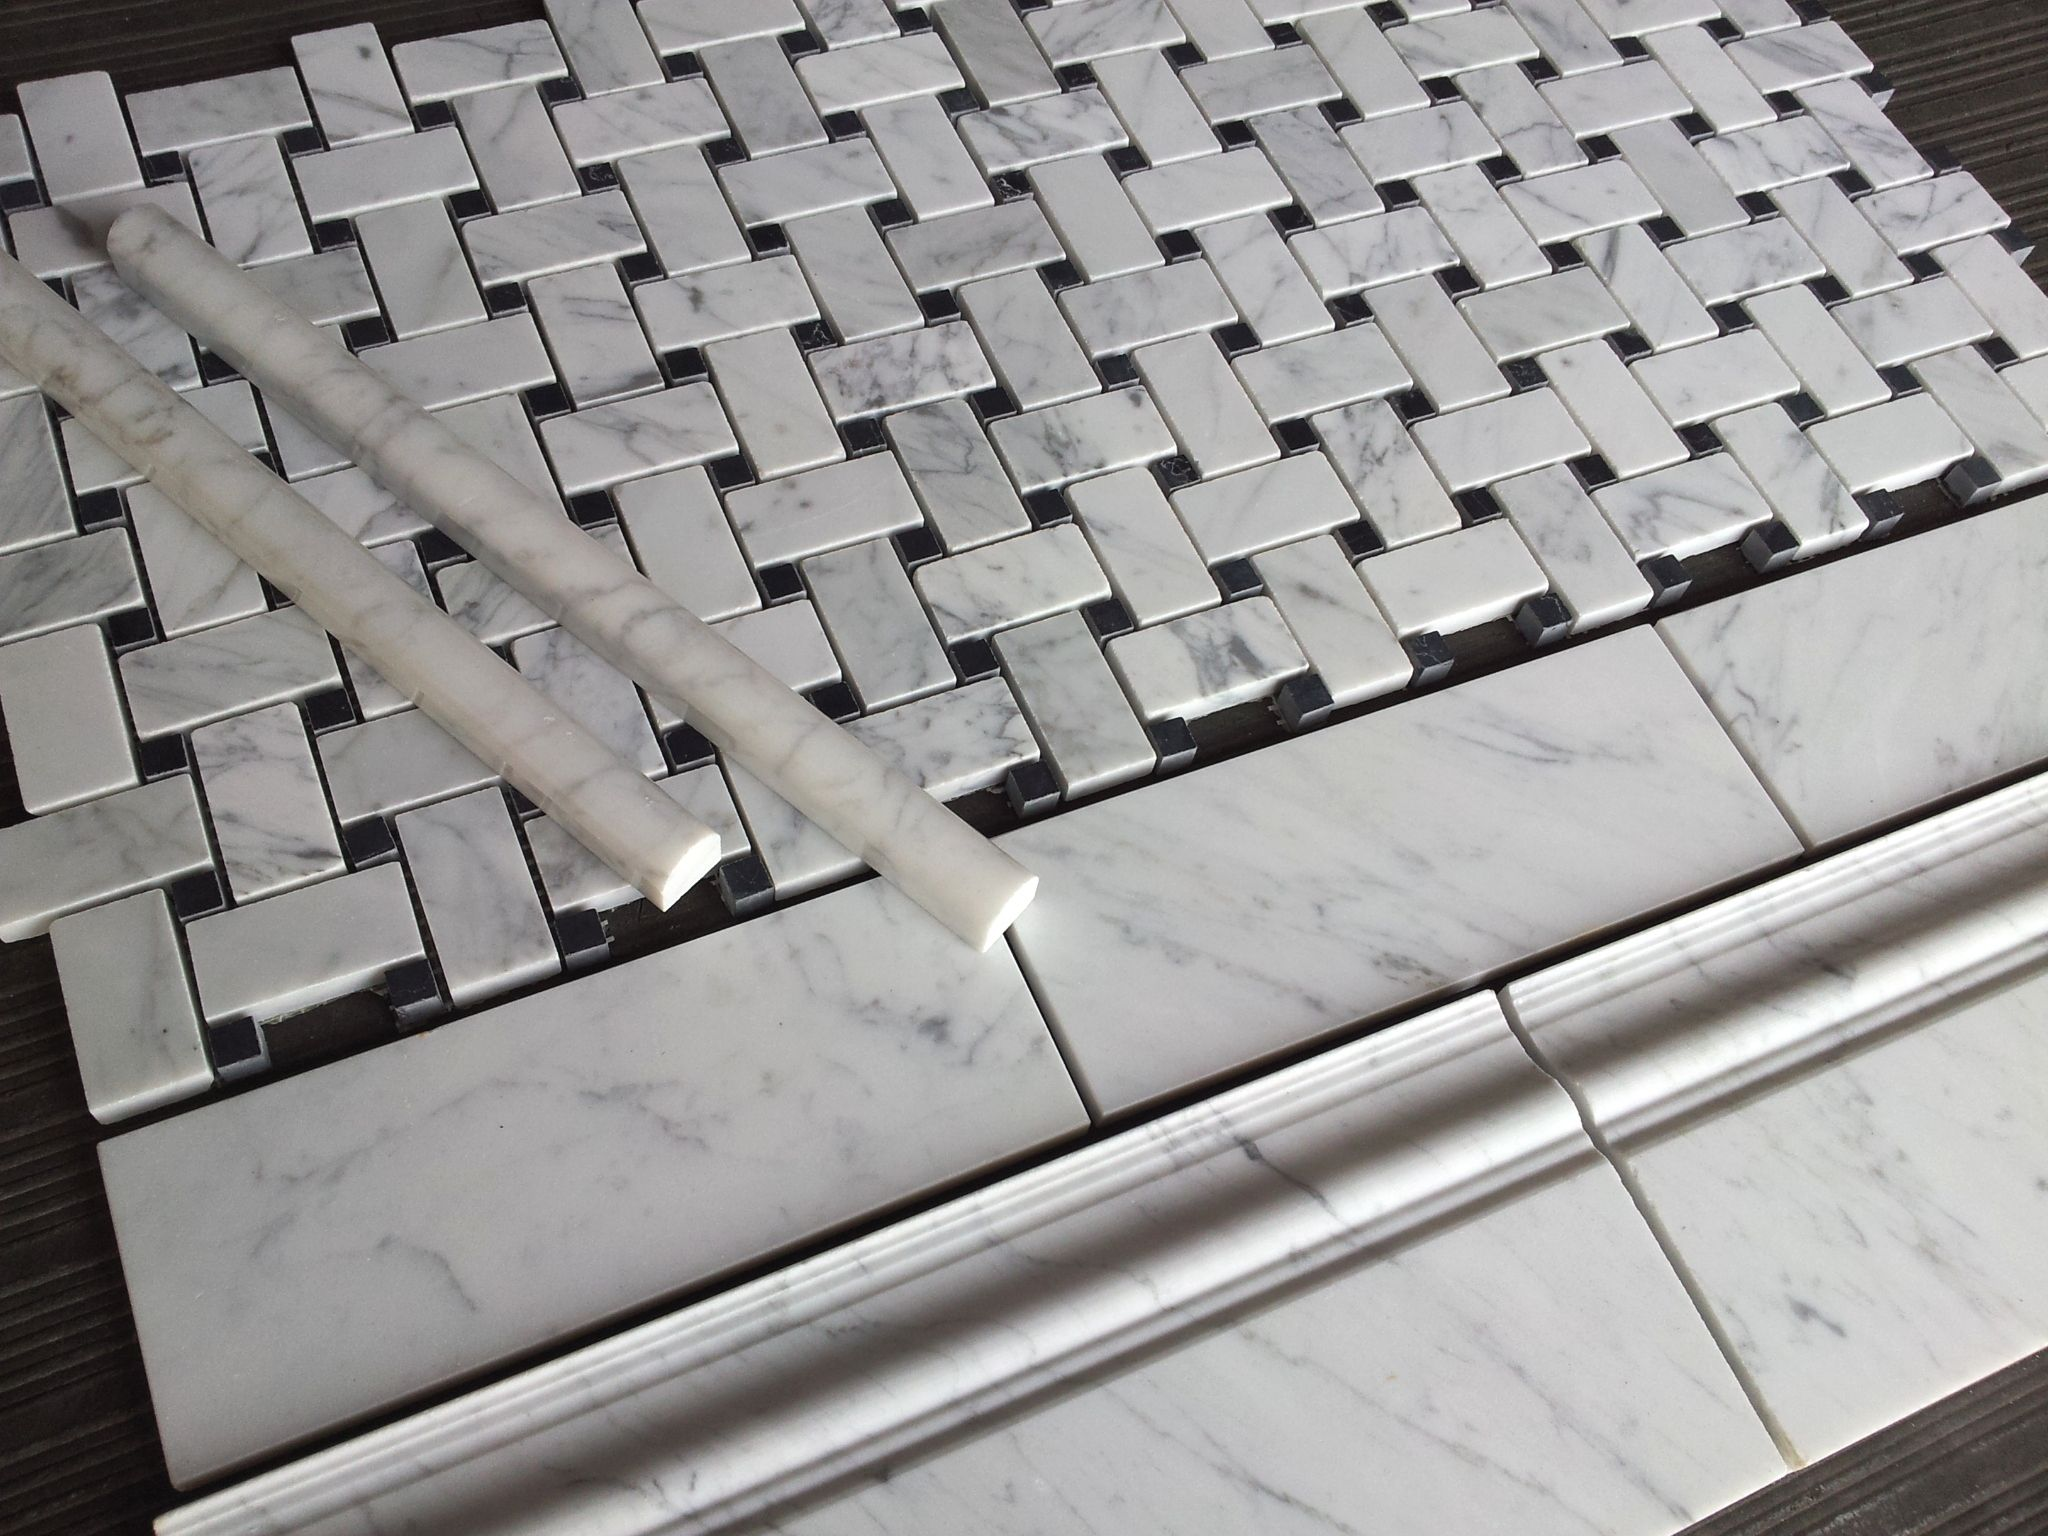 750 a square foot 3x8 subway tile honed from the italian marble 750 a square foot 3x8 subway tile honed from the italian marble collection bianco carrara dailygadgetfo Choice Image